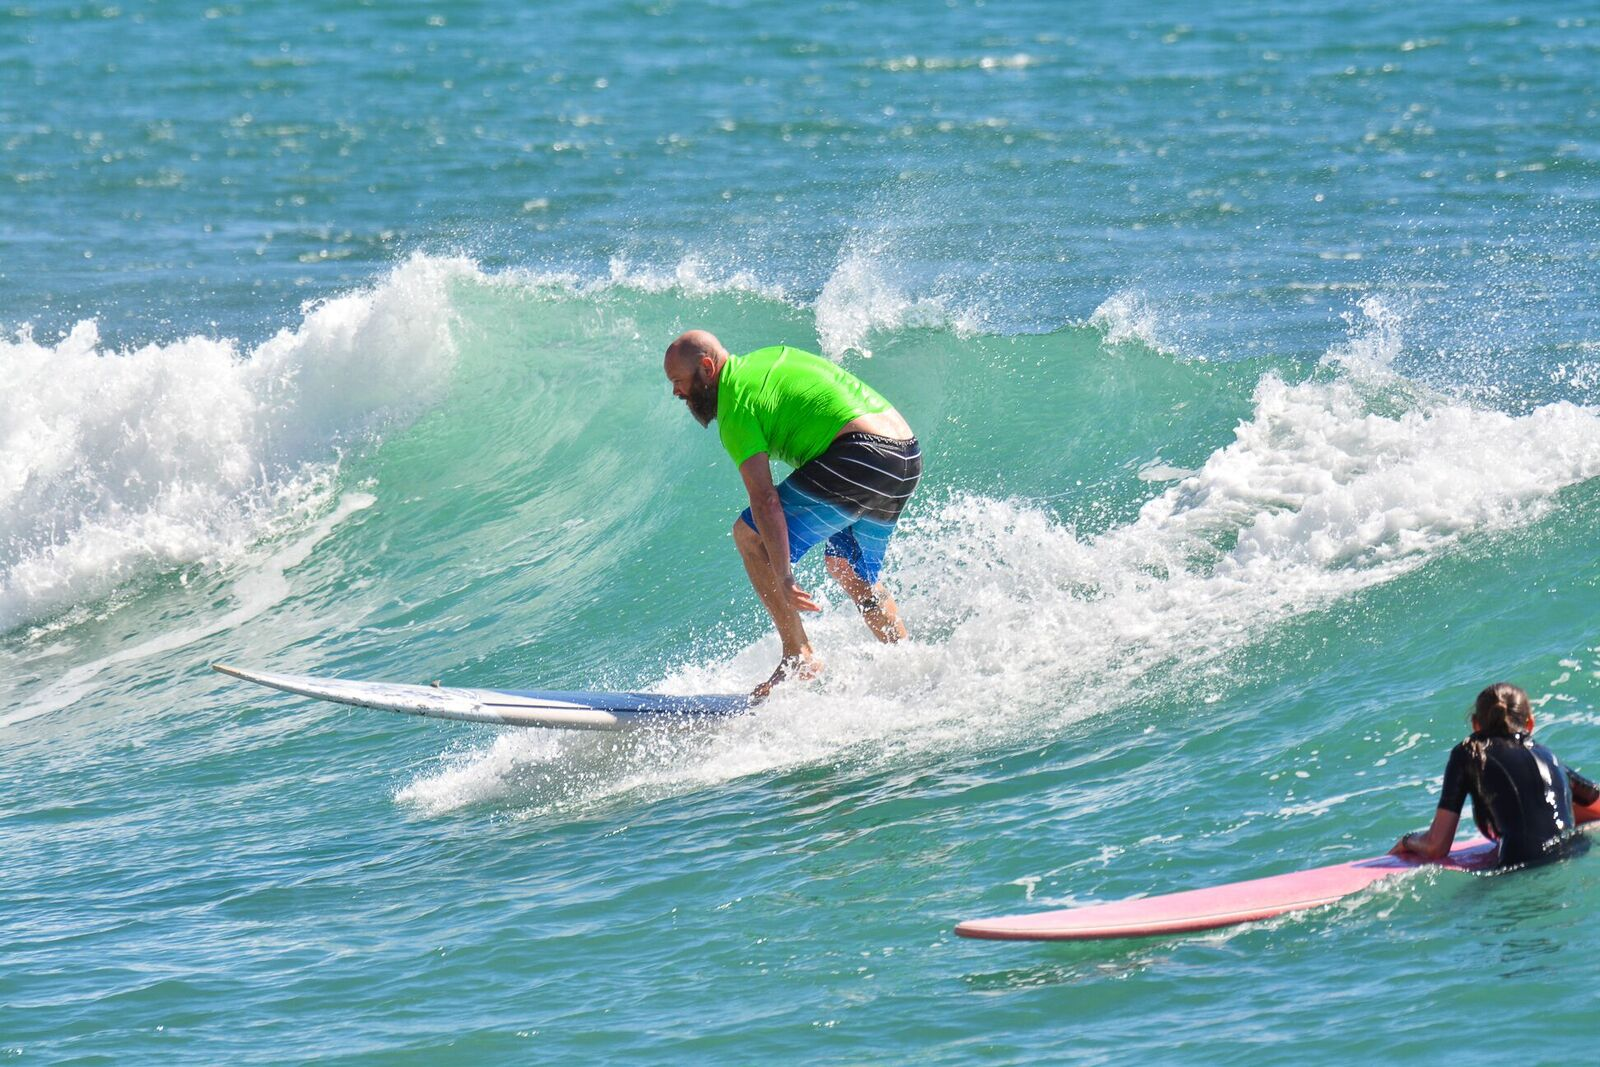 Half day Costa Azul surf experience: Mexican summer surfing